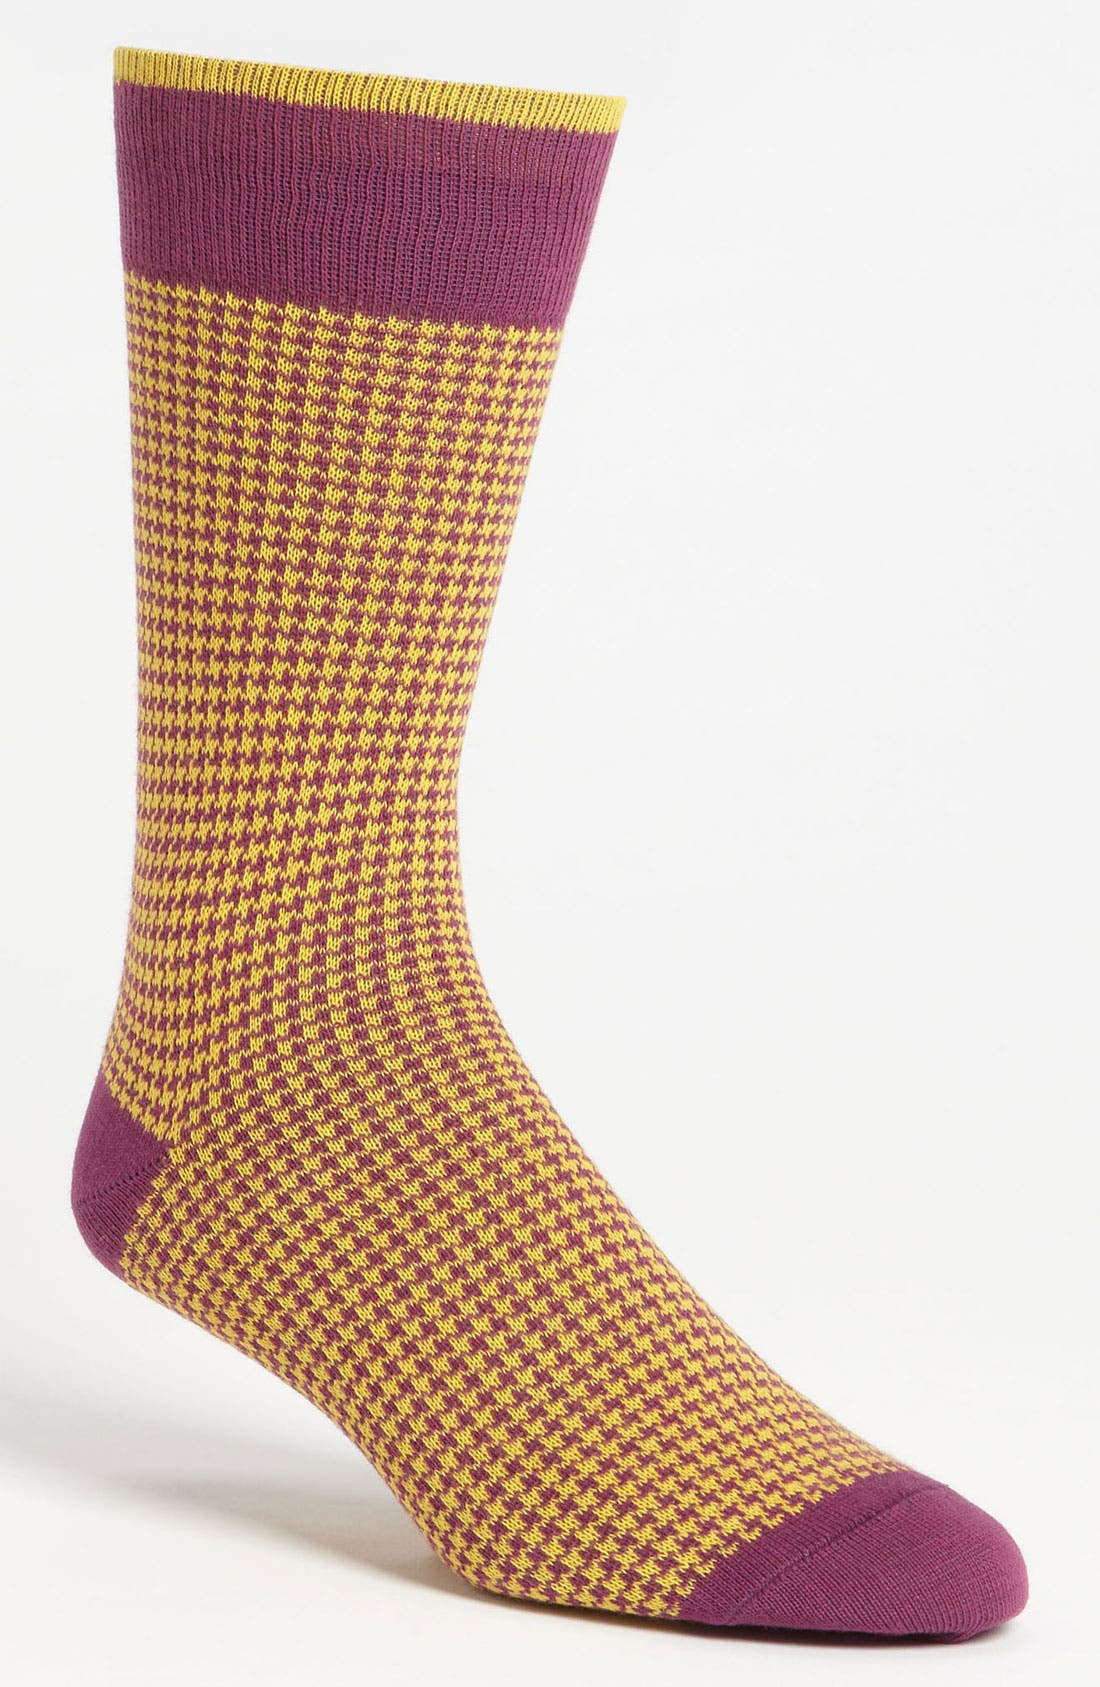 Alternate Image 1 Selected - Lorenzo Uomo Houndstooth Check Socks